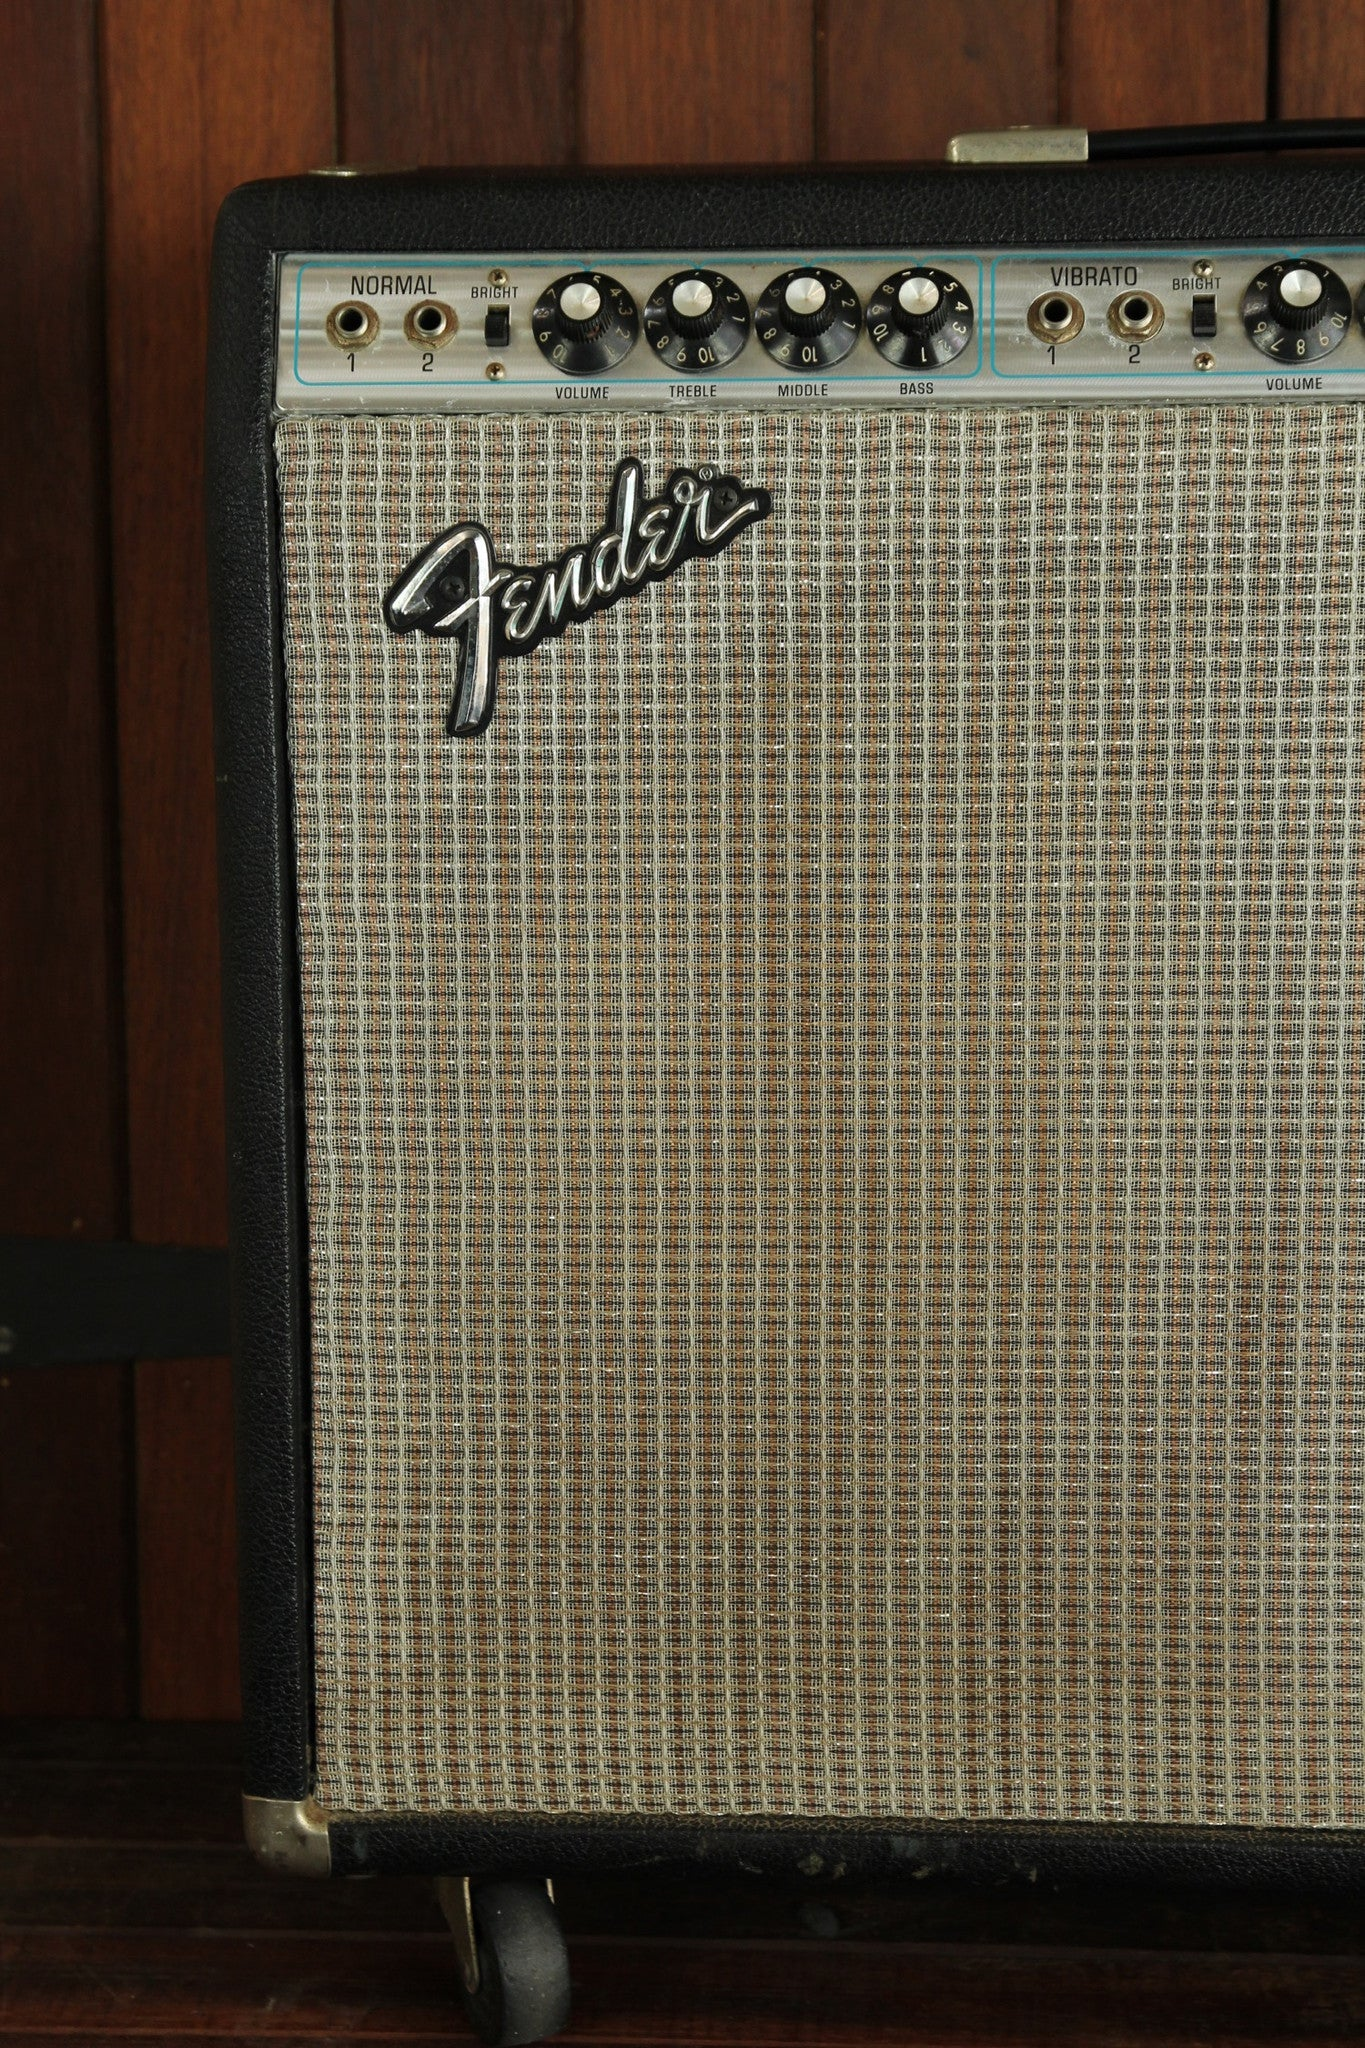 Fender Twin Reverb 1974 Model Vintage Valve Amplifier - The Rock Inn - 3